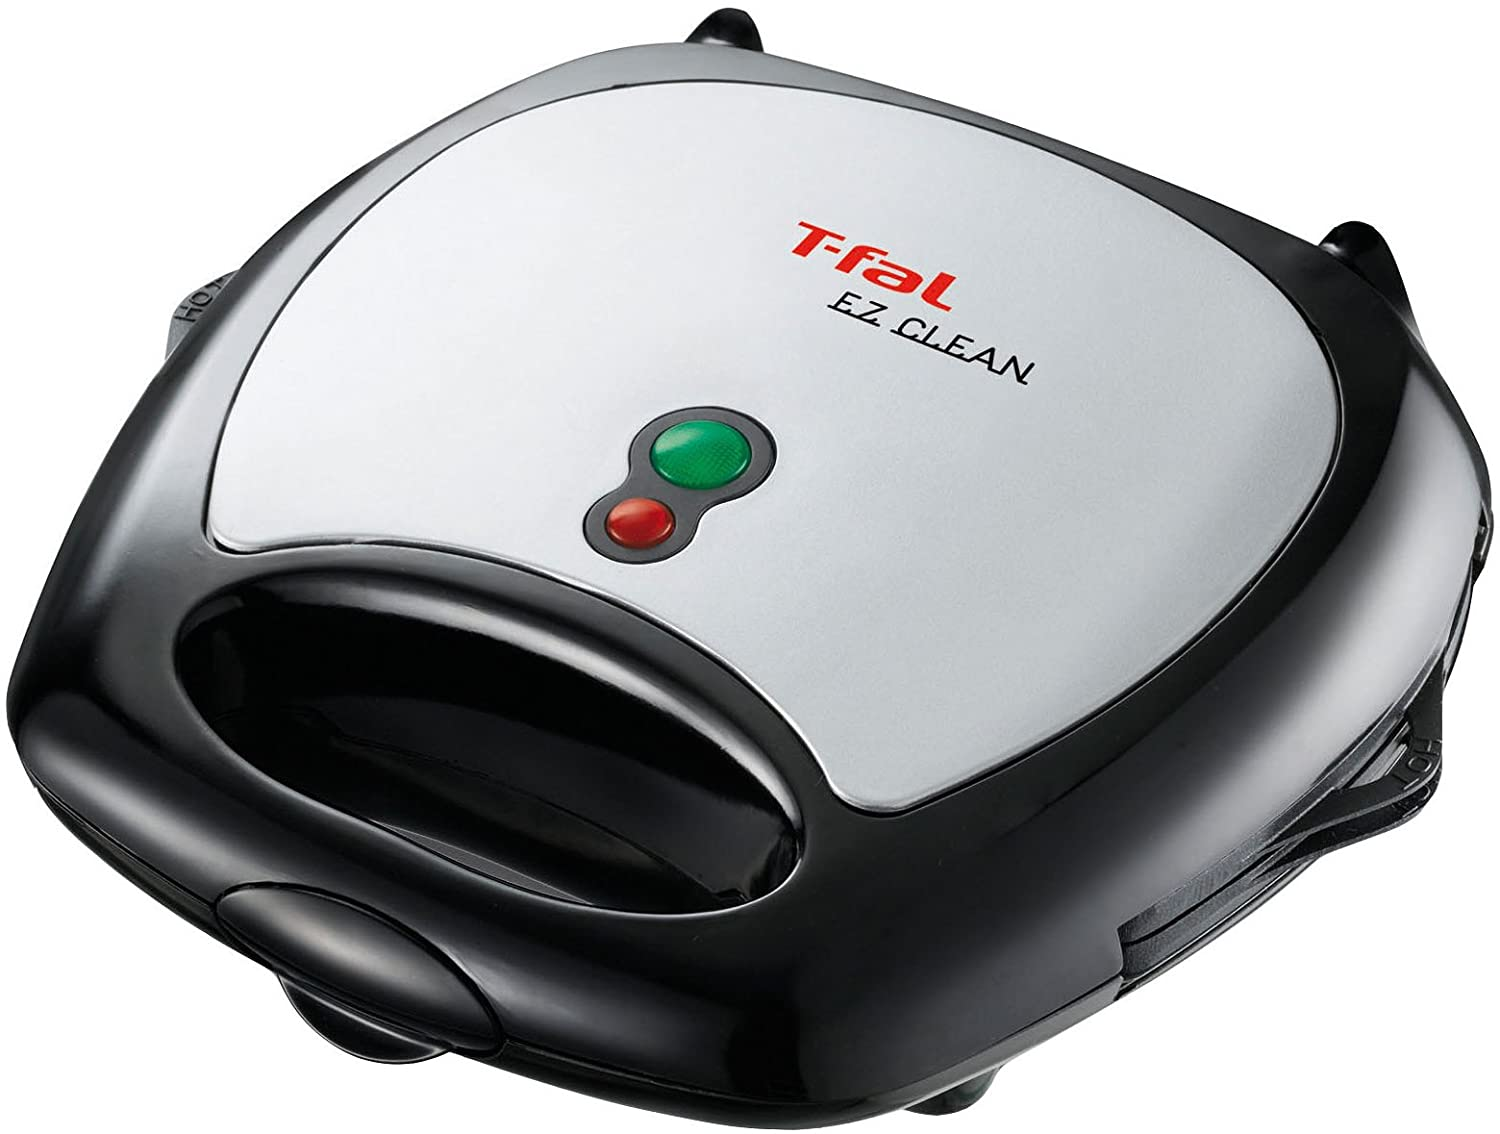 T-fal 1500637135SW6100 EZ Clean Easy to Clean Nonstick Sandwich and Waffle Maker with Removable Dishwasher Safe Plates, 2-Slice, Silver